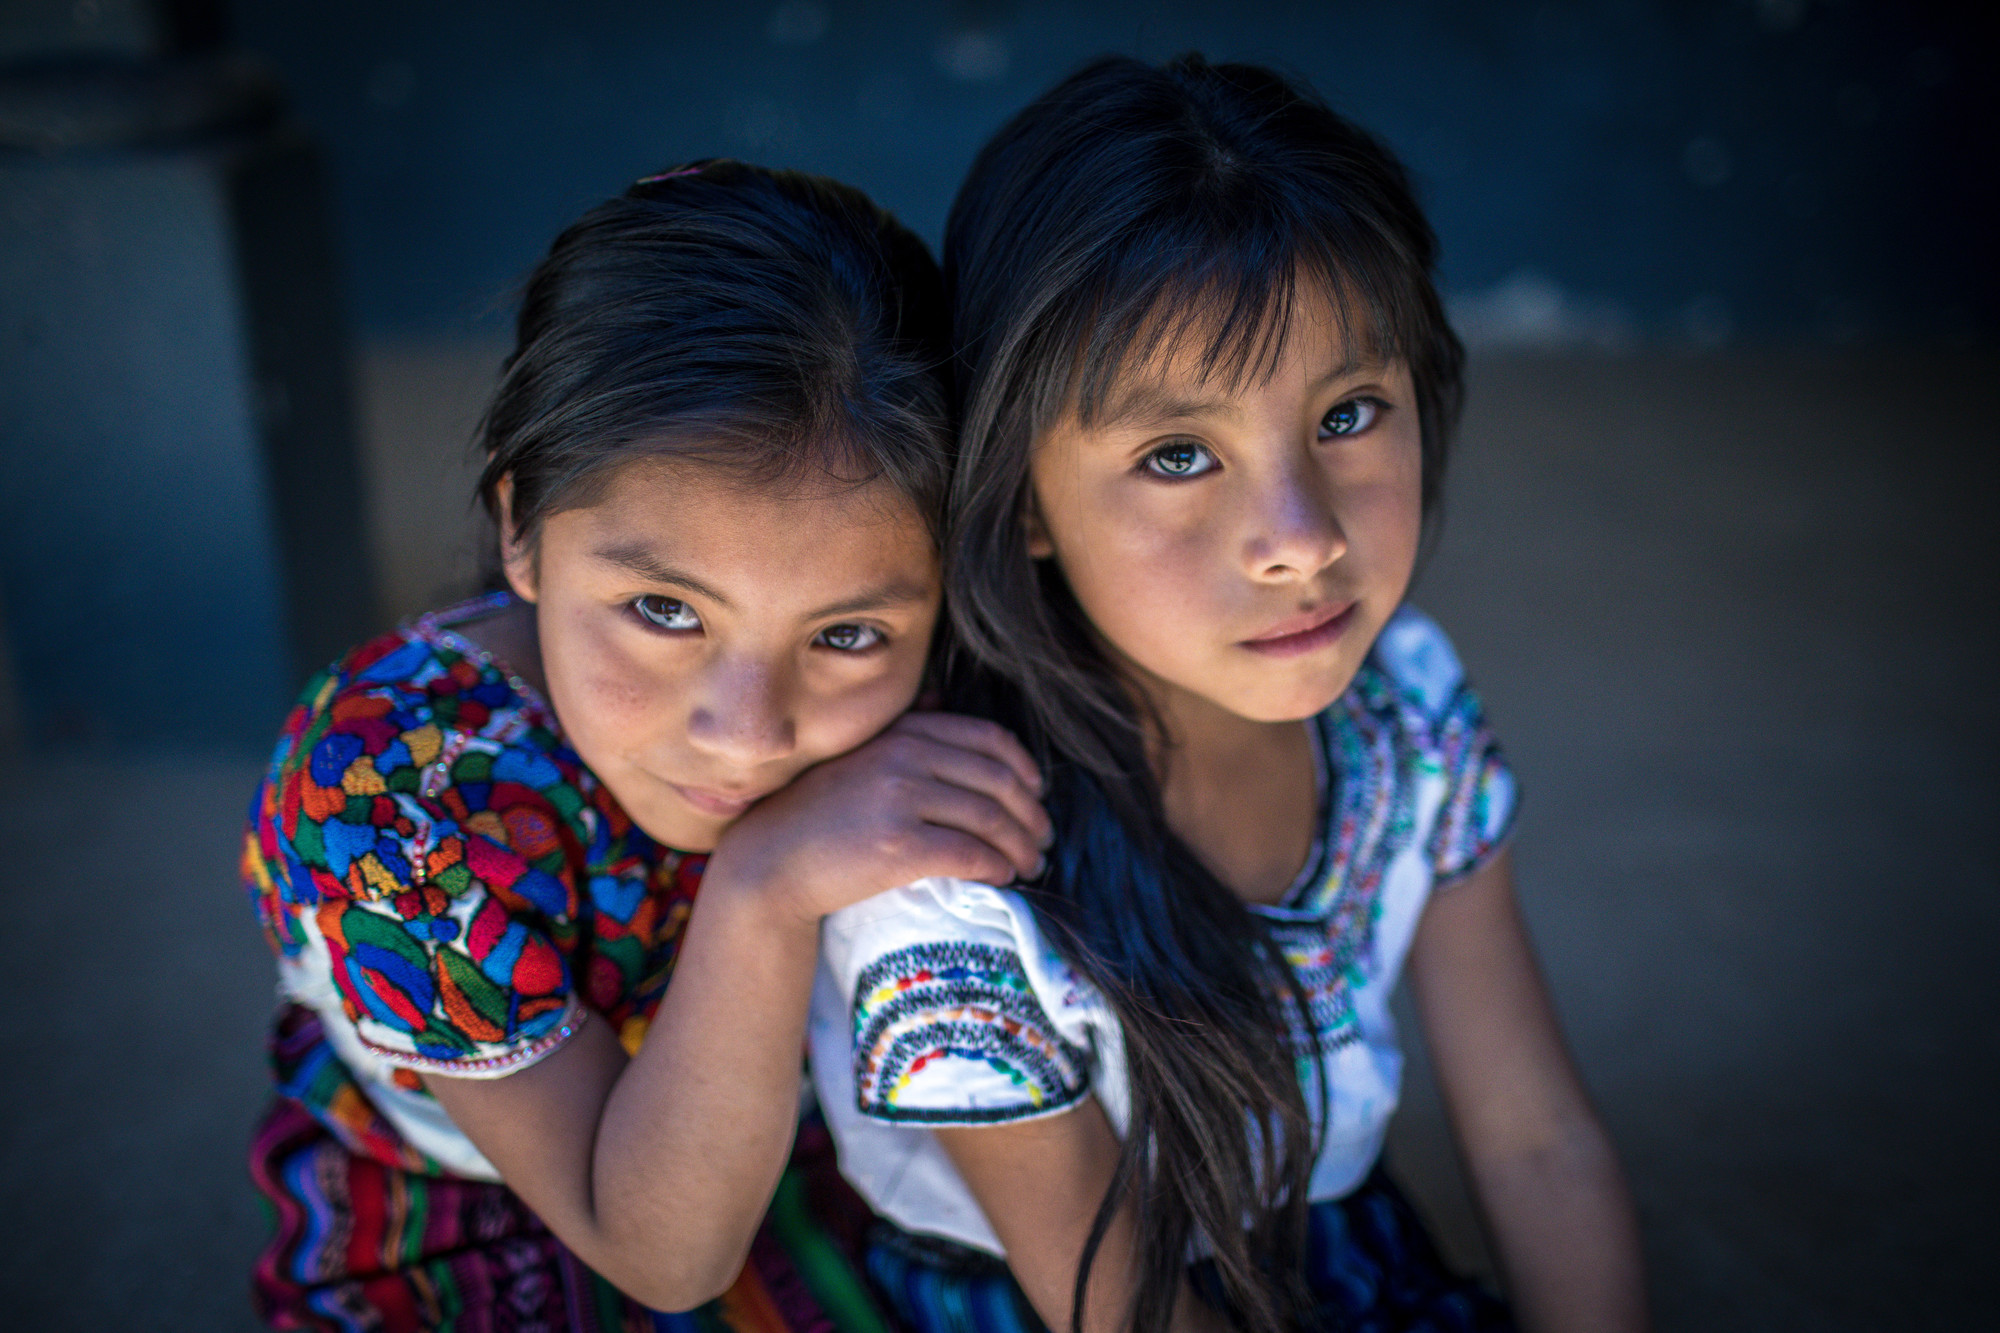 Two girls look up directly ahead.